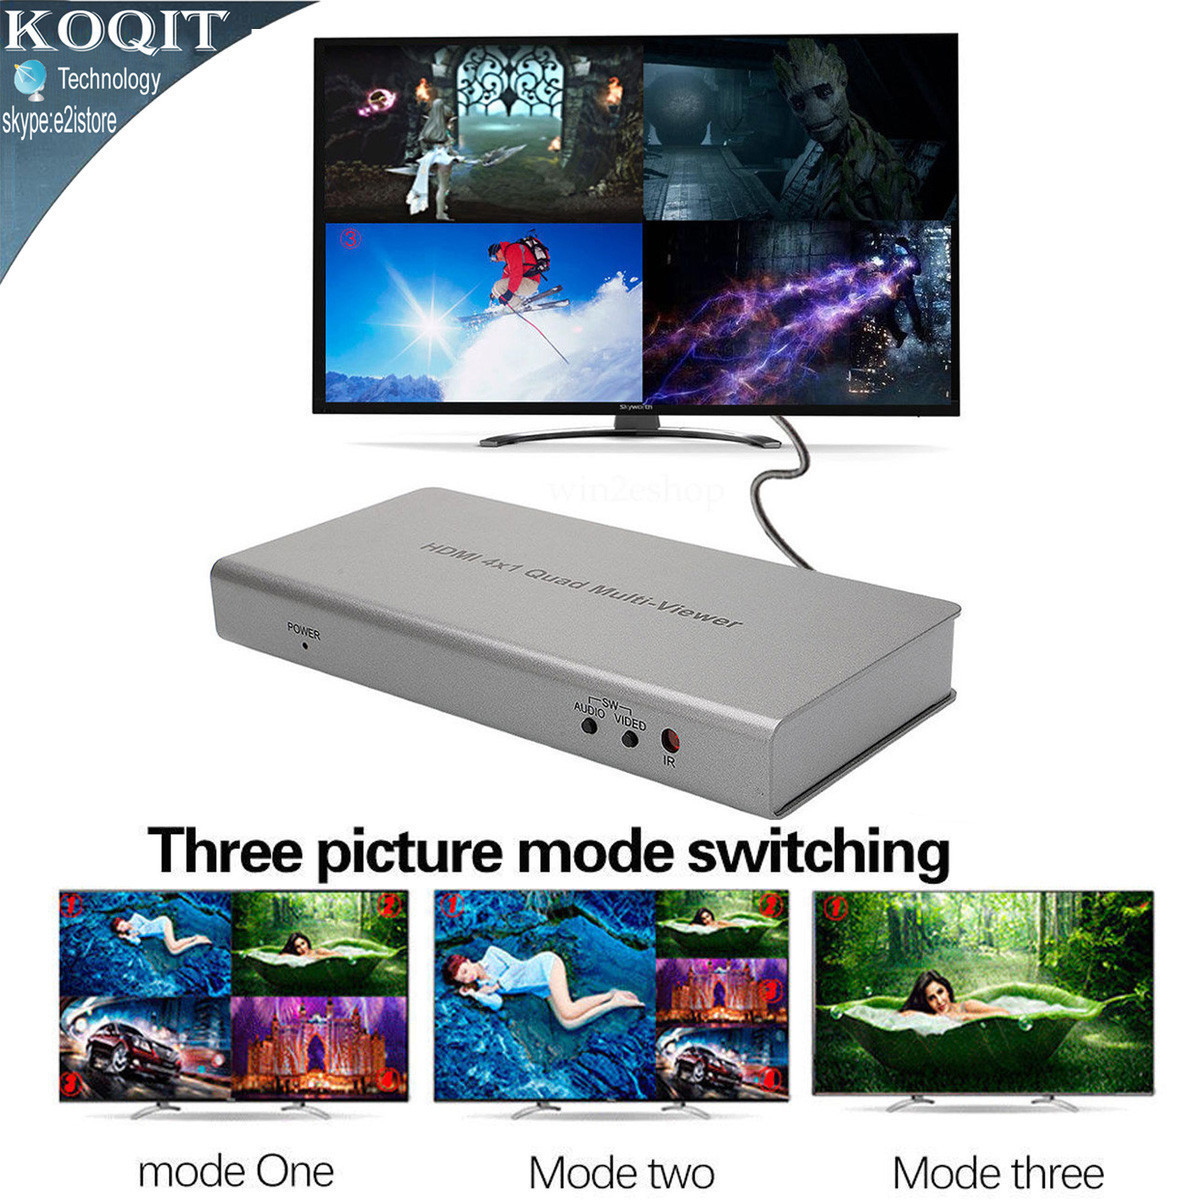 HDMI Multi-viewer 4X1 HDMI Quad Screen Real Time Multiviewer with HDMI seamless Switcher function full 1080P 3D + Remote Control 4x1 hdmi multi viewer switcher hdmi quad screen real time multiviewer with hdmi fast switching function full 1080p 5 modes